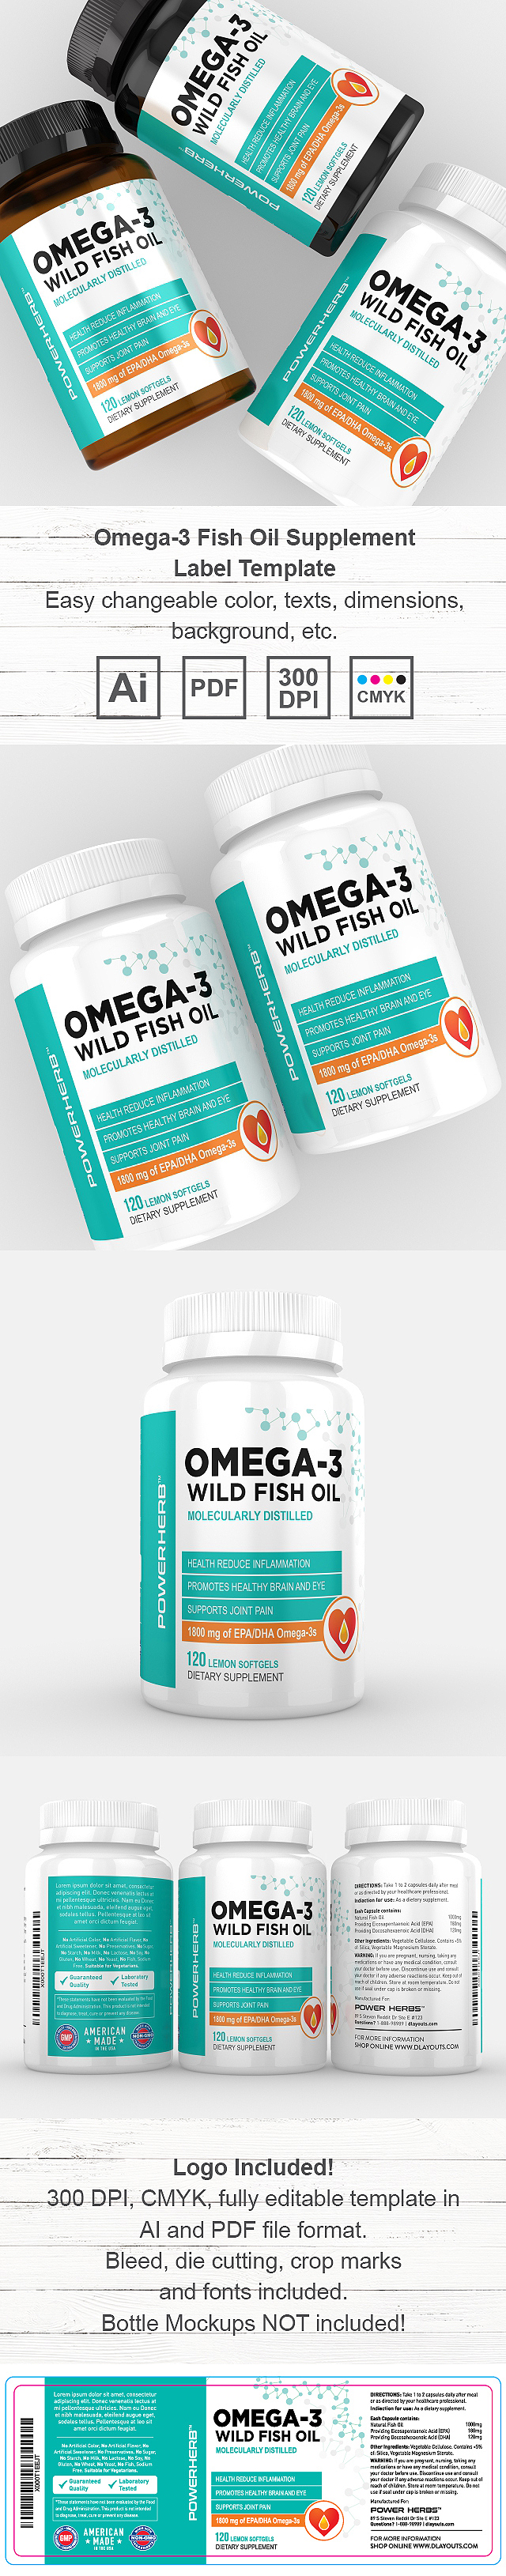 Omega 3 Fish Oil Supplement Label Template